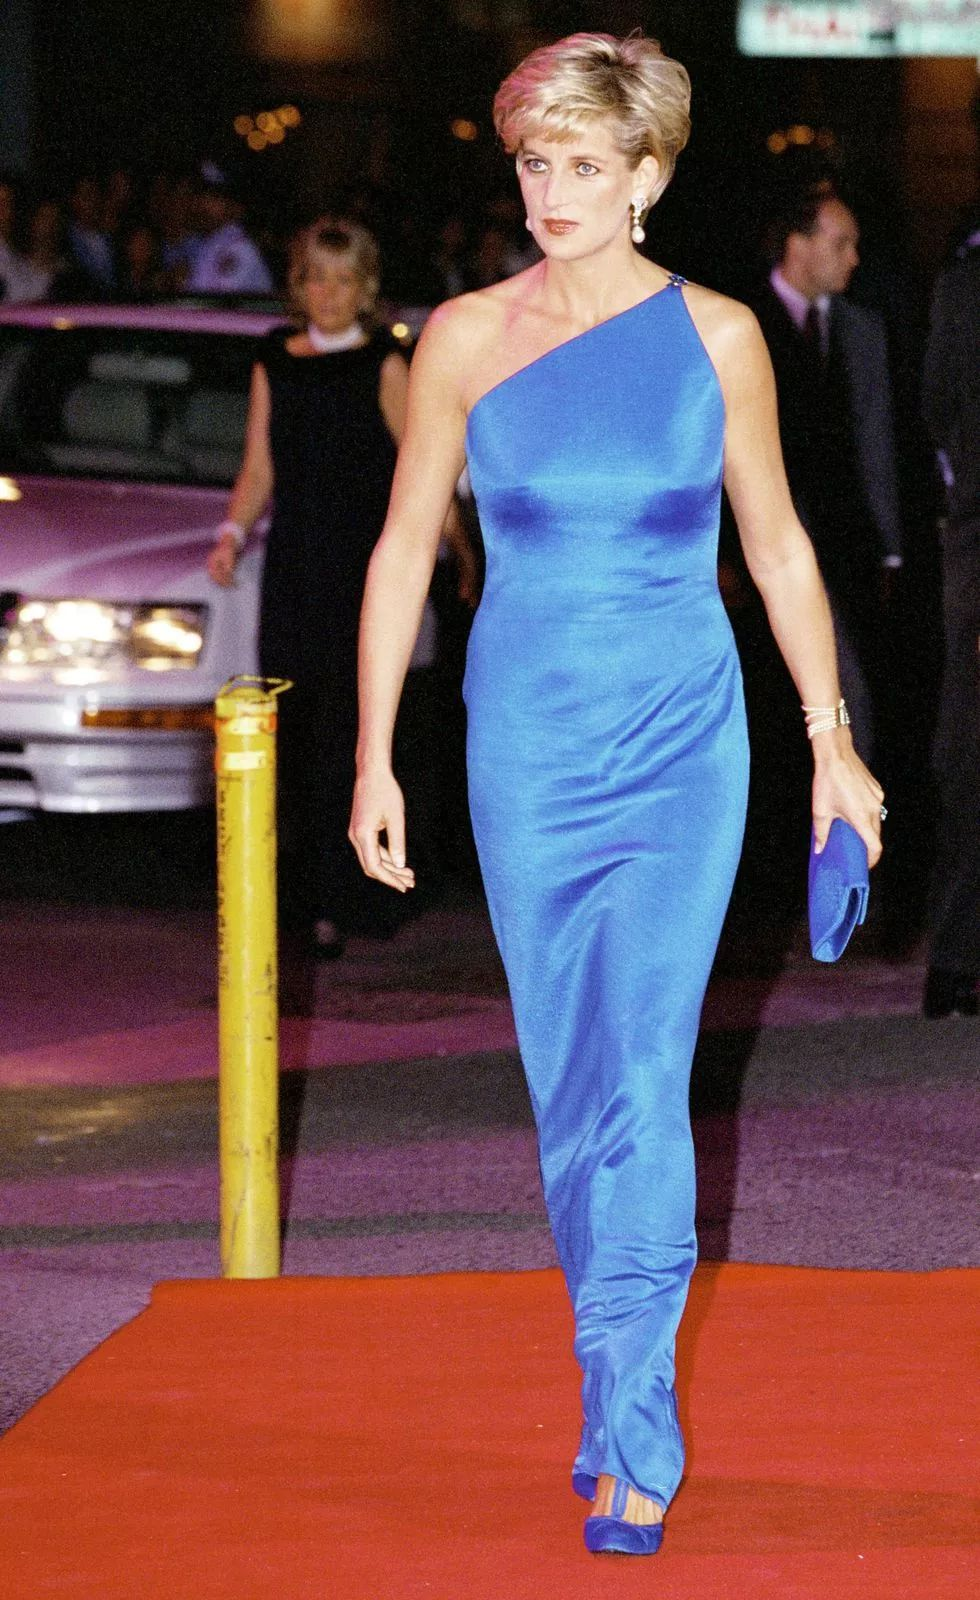 Princess Diana at the Victor Chang Charity Ball for the Cardiac Research Institute, 1996